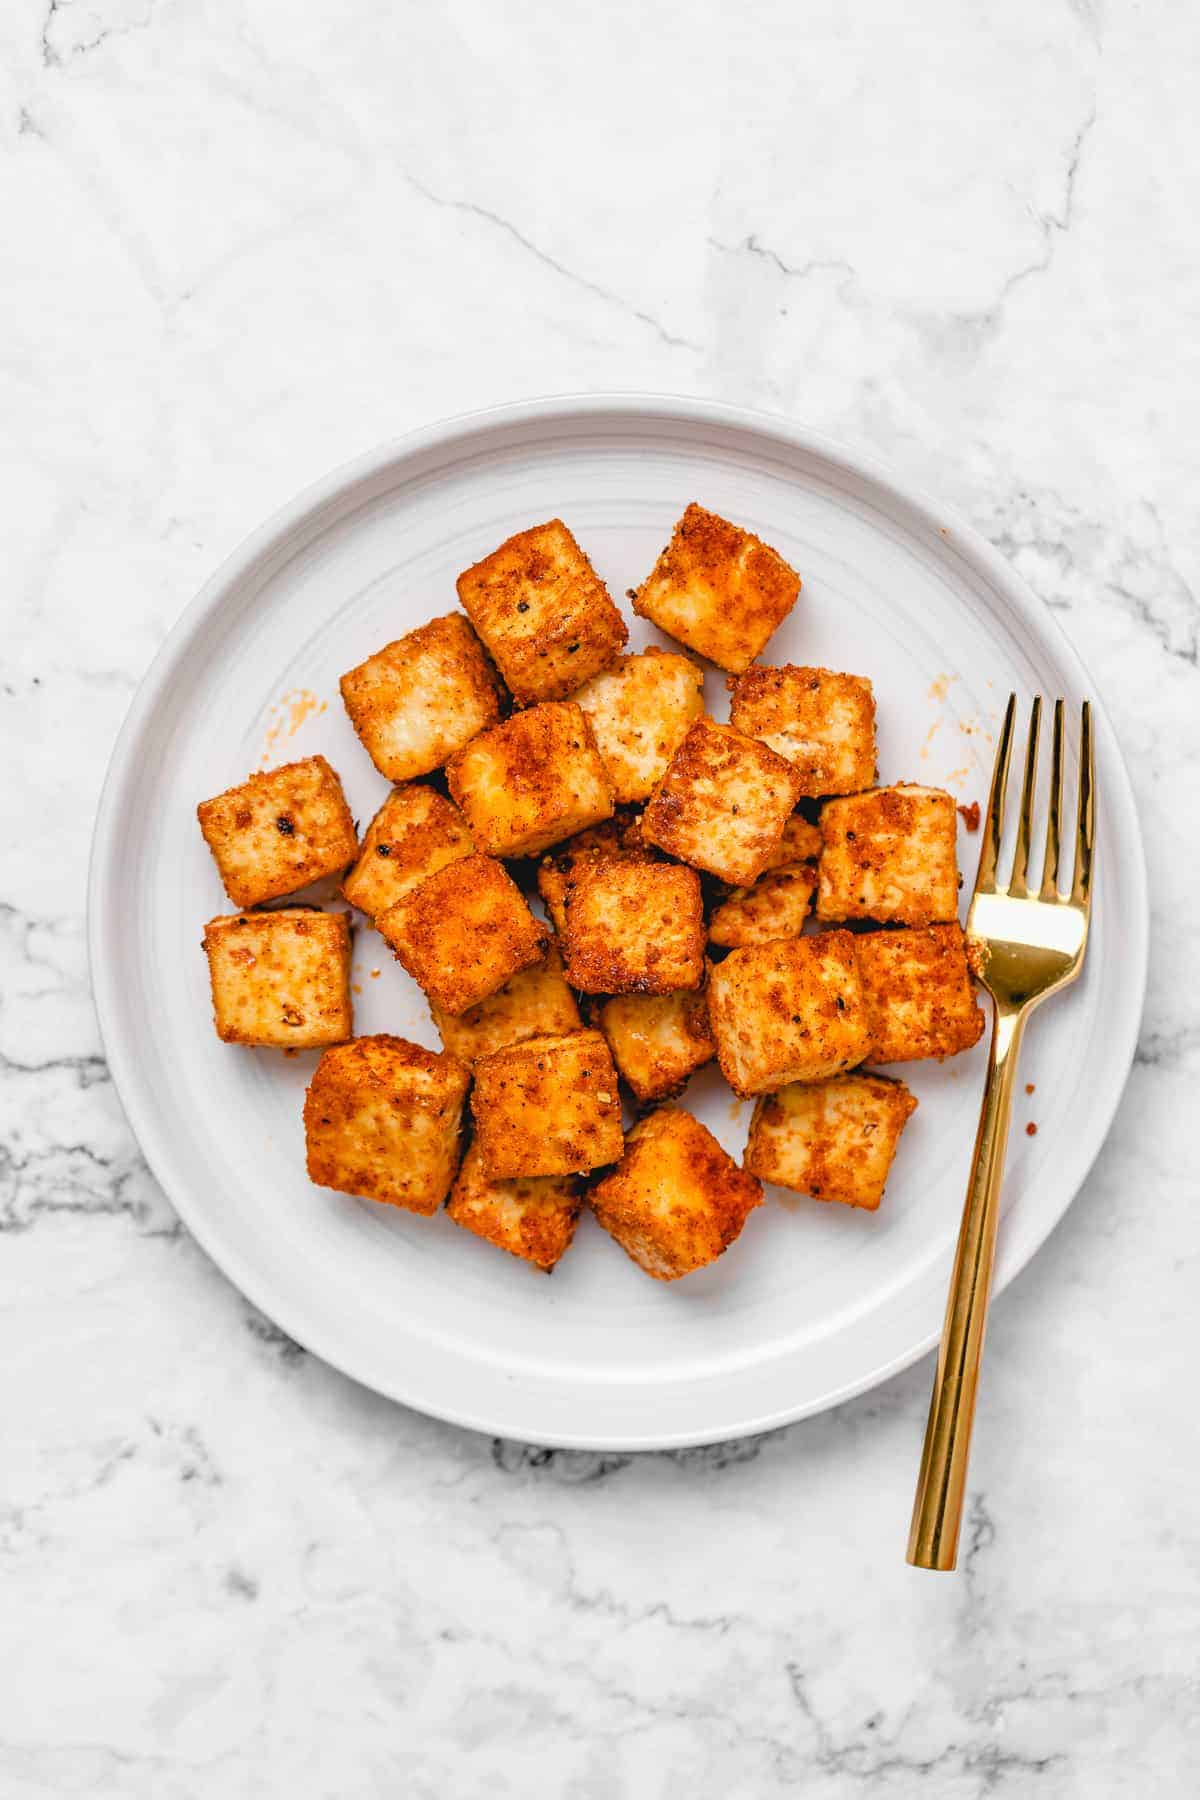 Crispy baked tofu on a white round plate with a gold fork